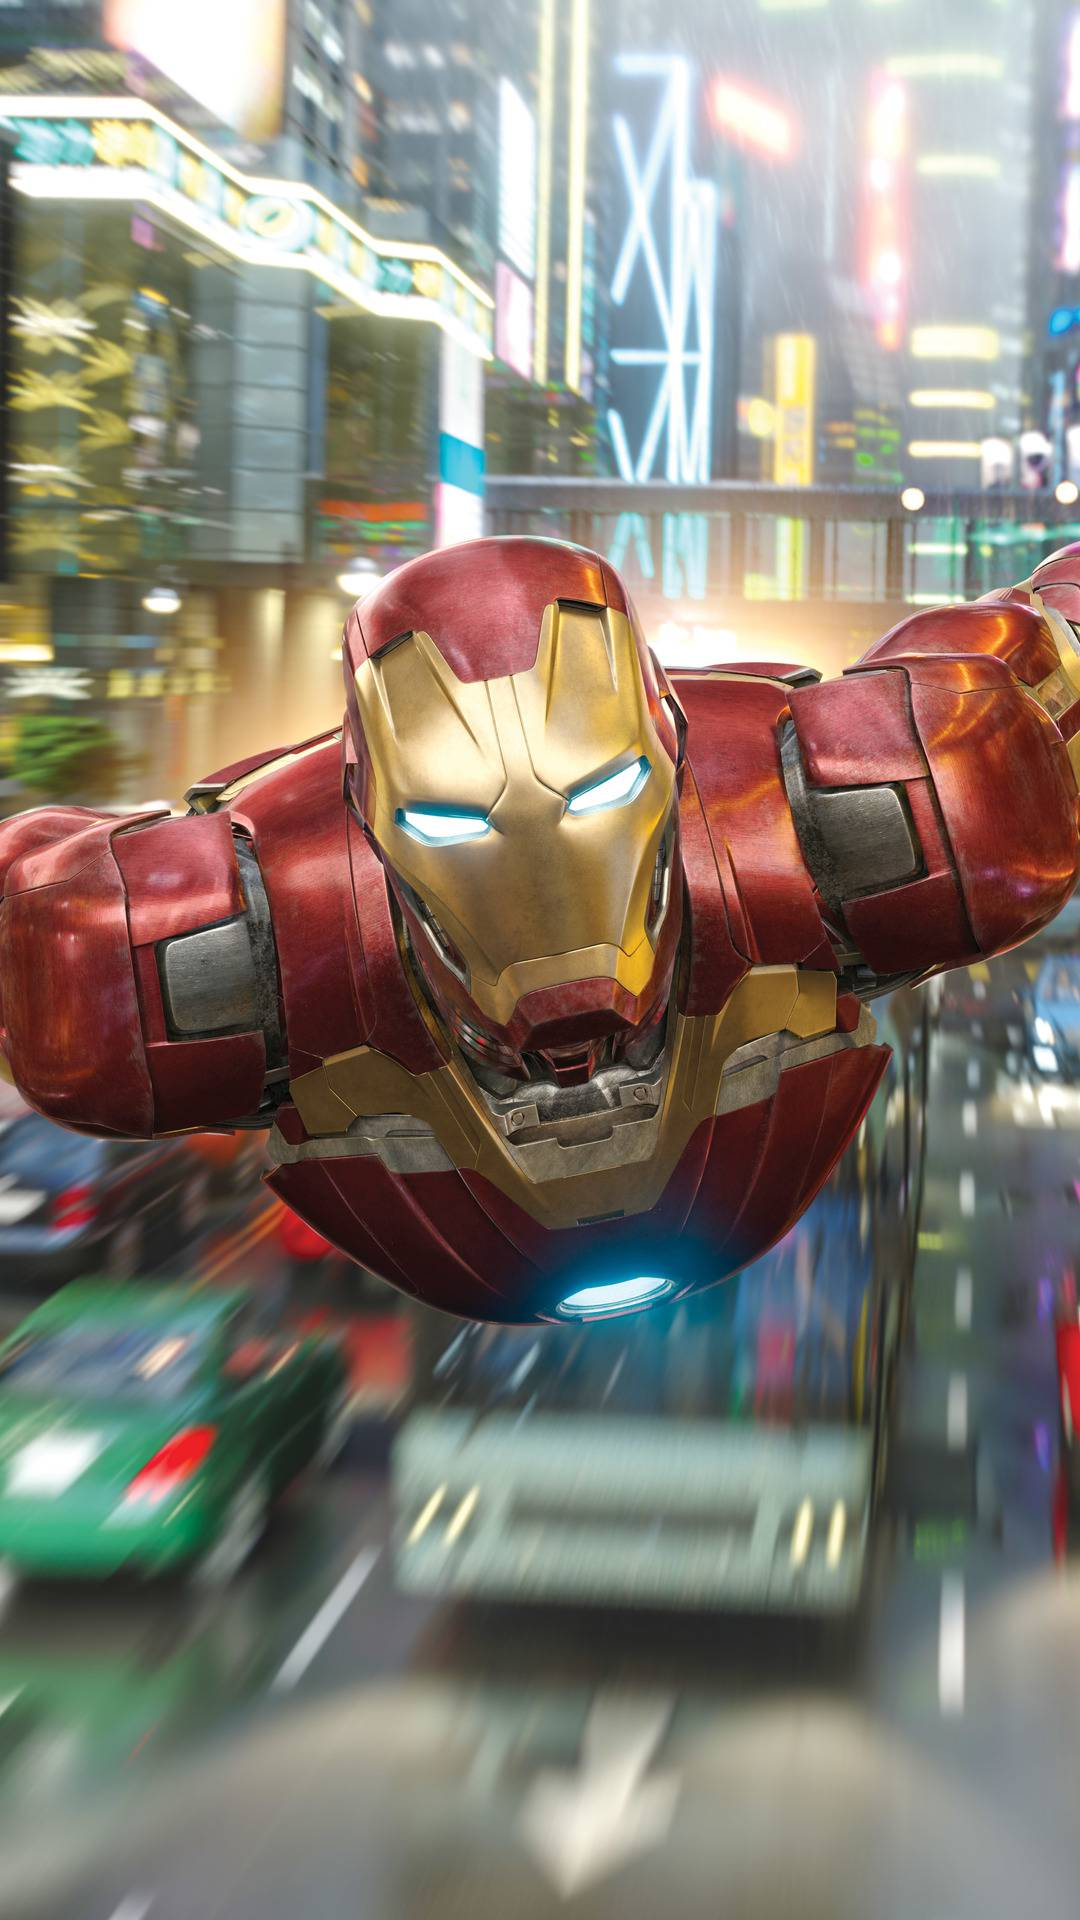 Cute Animal Wallpapers For Phones Iron Man Mark 43 Flight Iphone Wallpaper Iphone Wallpapers